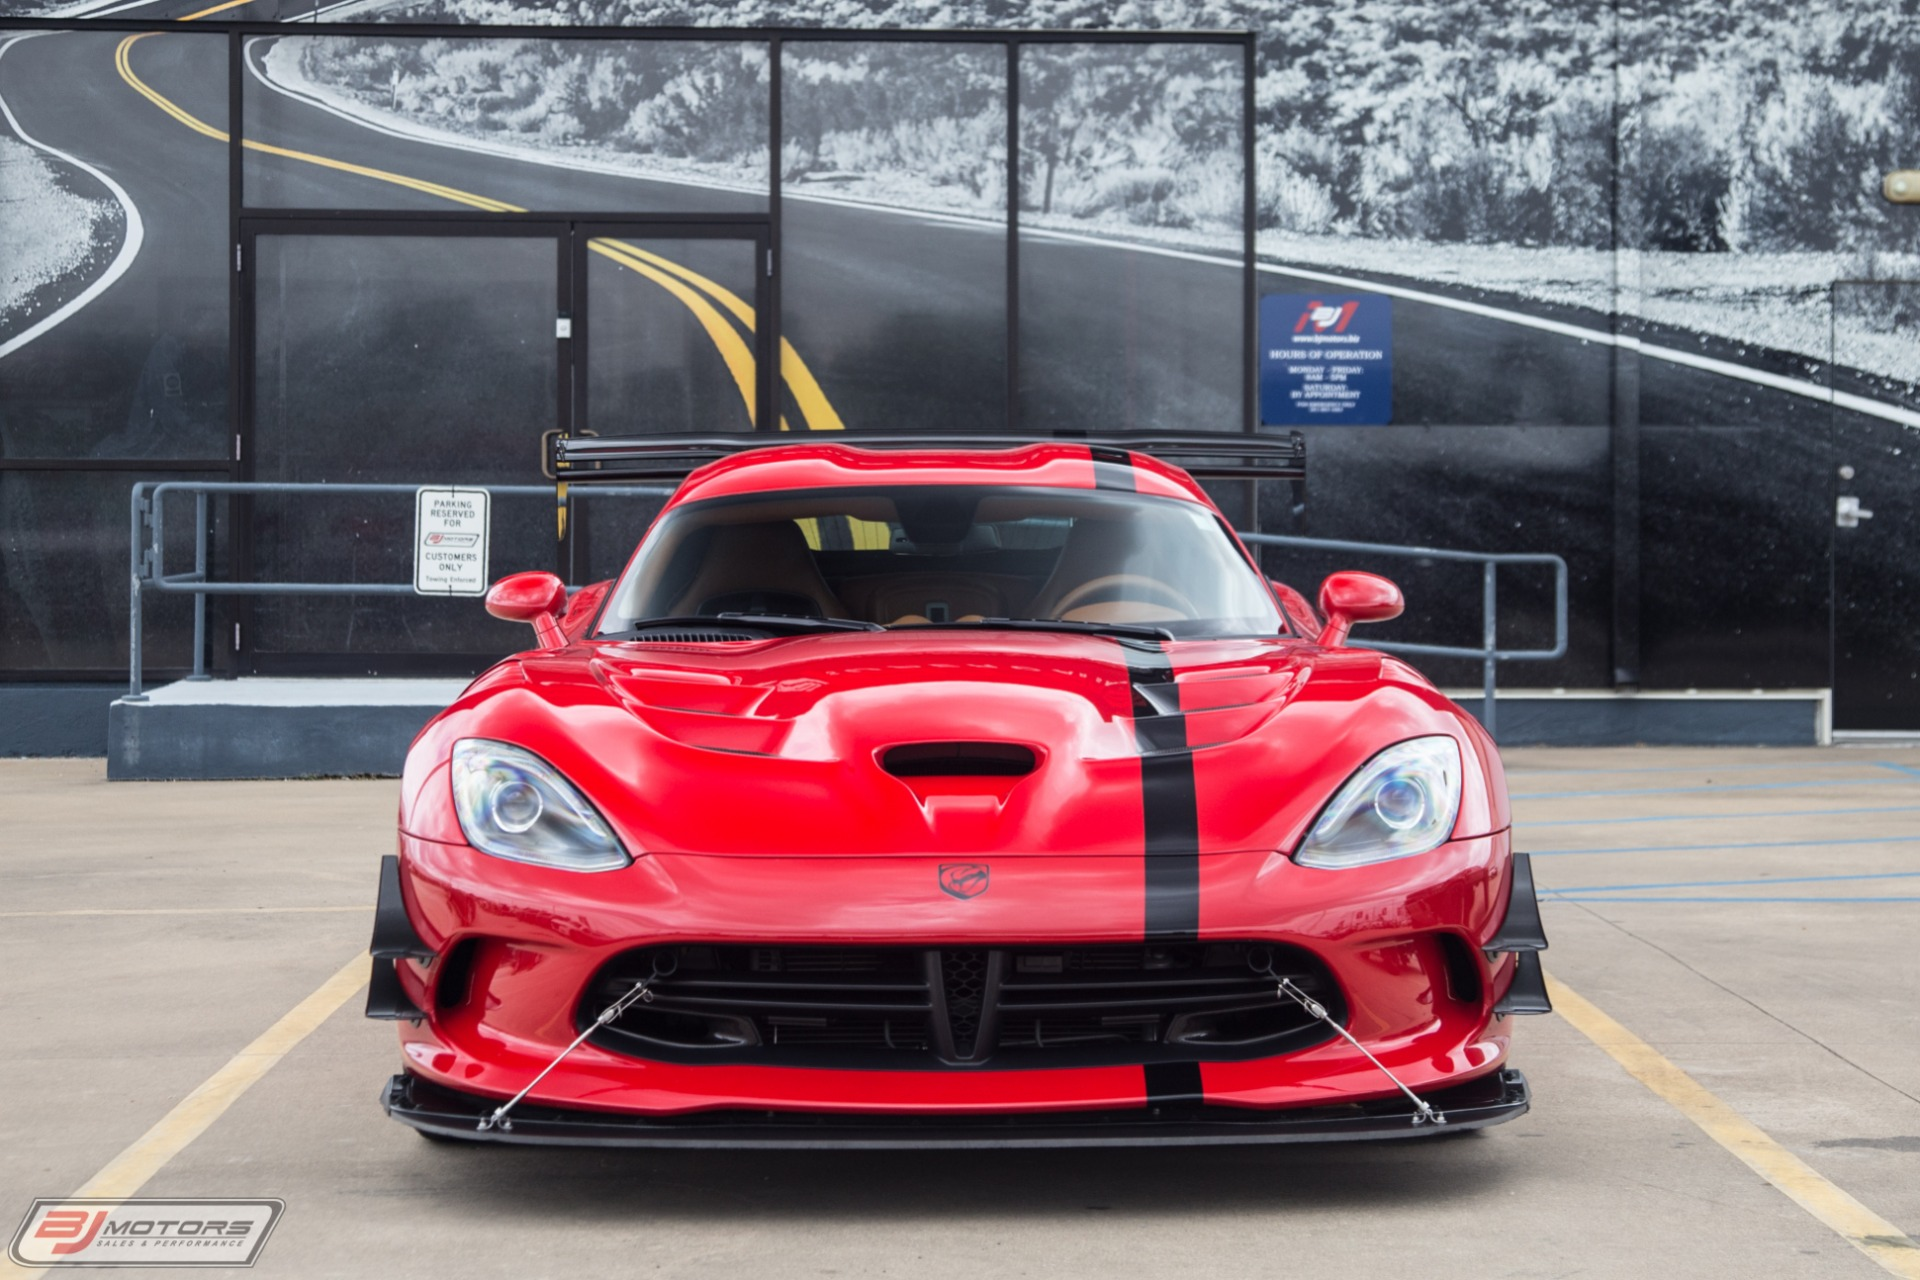 Used-2017-Dodge-Viper-ACR-Extreme